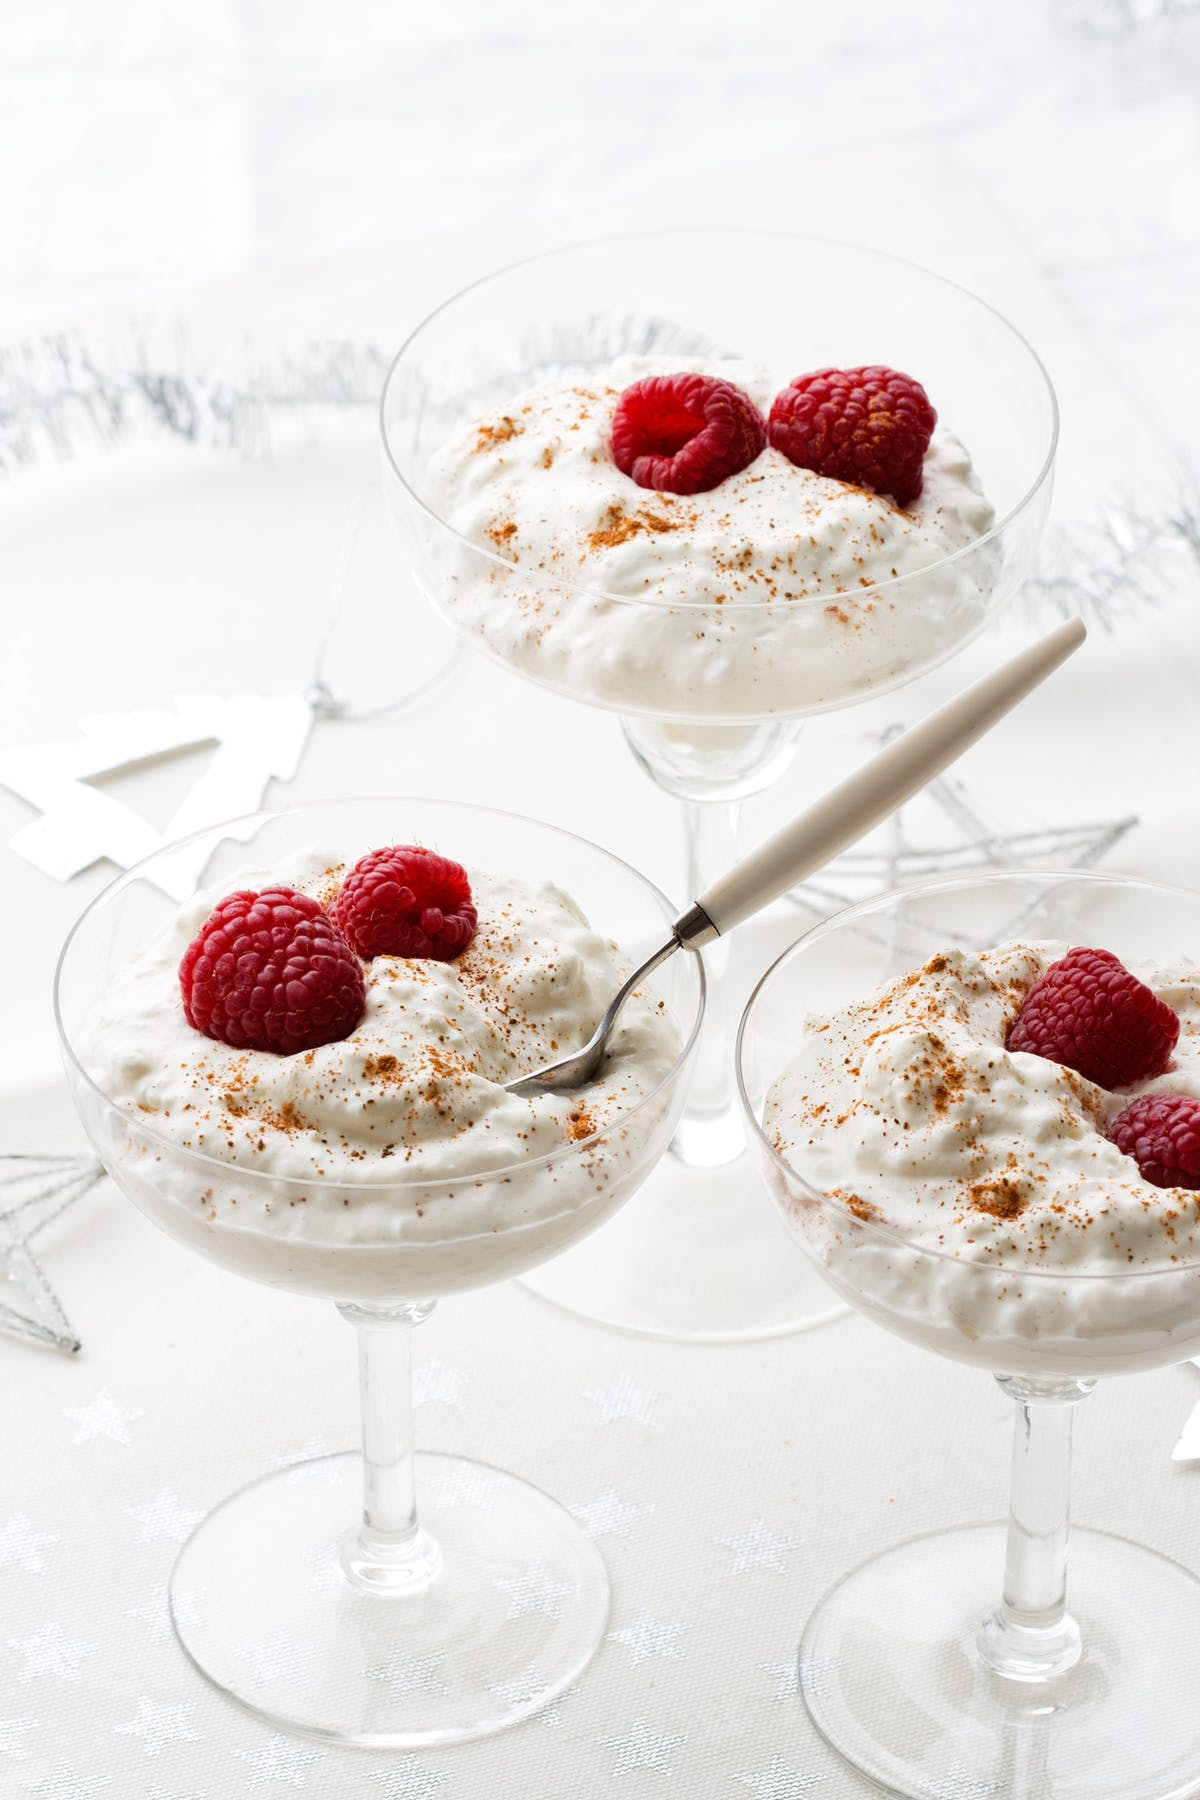 Creamy low-carb rice pudding